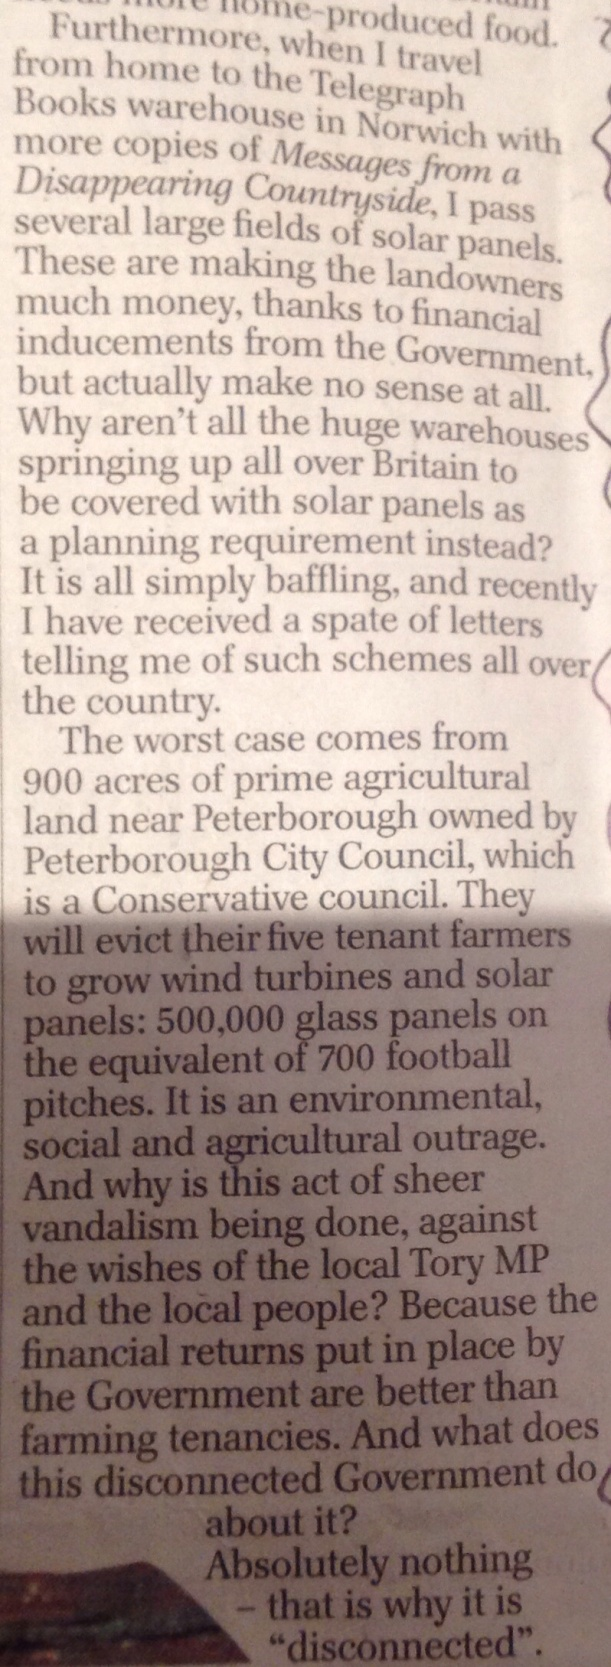 Robin Page criticises Peterborough City Councils of 'sheer vandalism' in his Country Diary article in the Telegraph